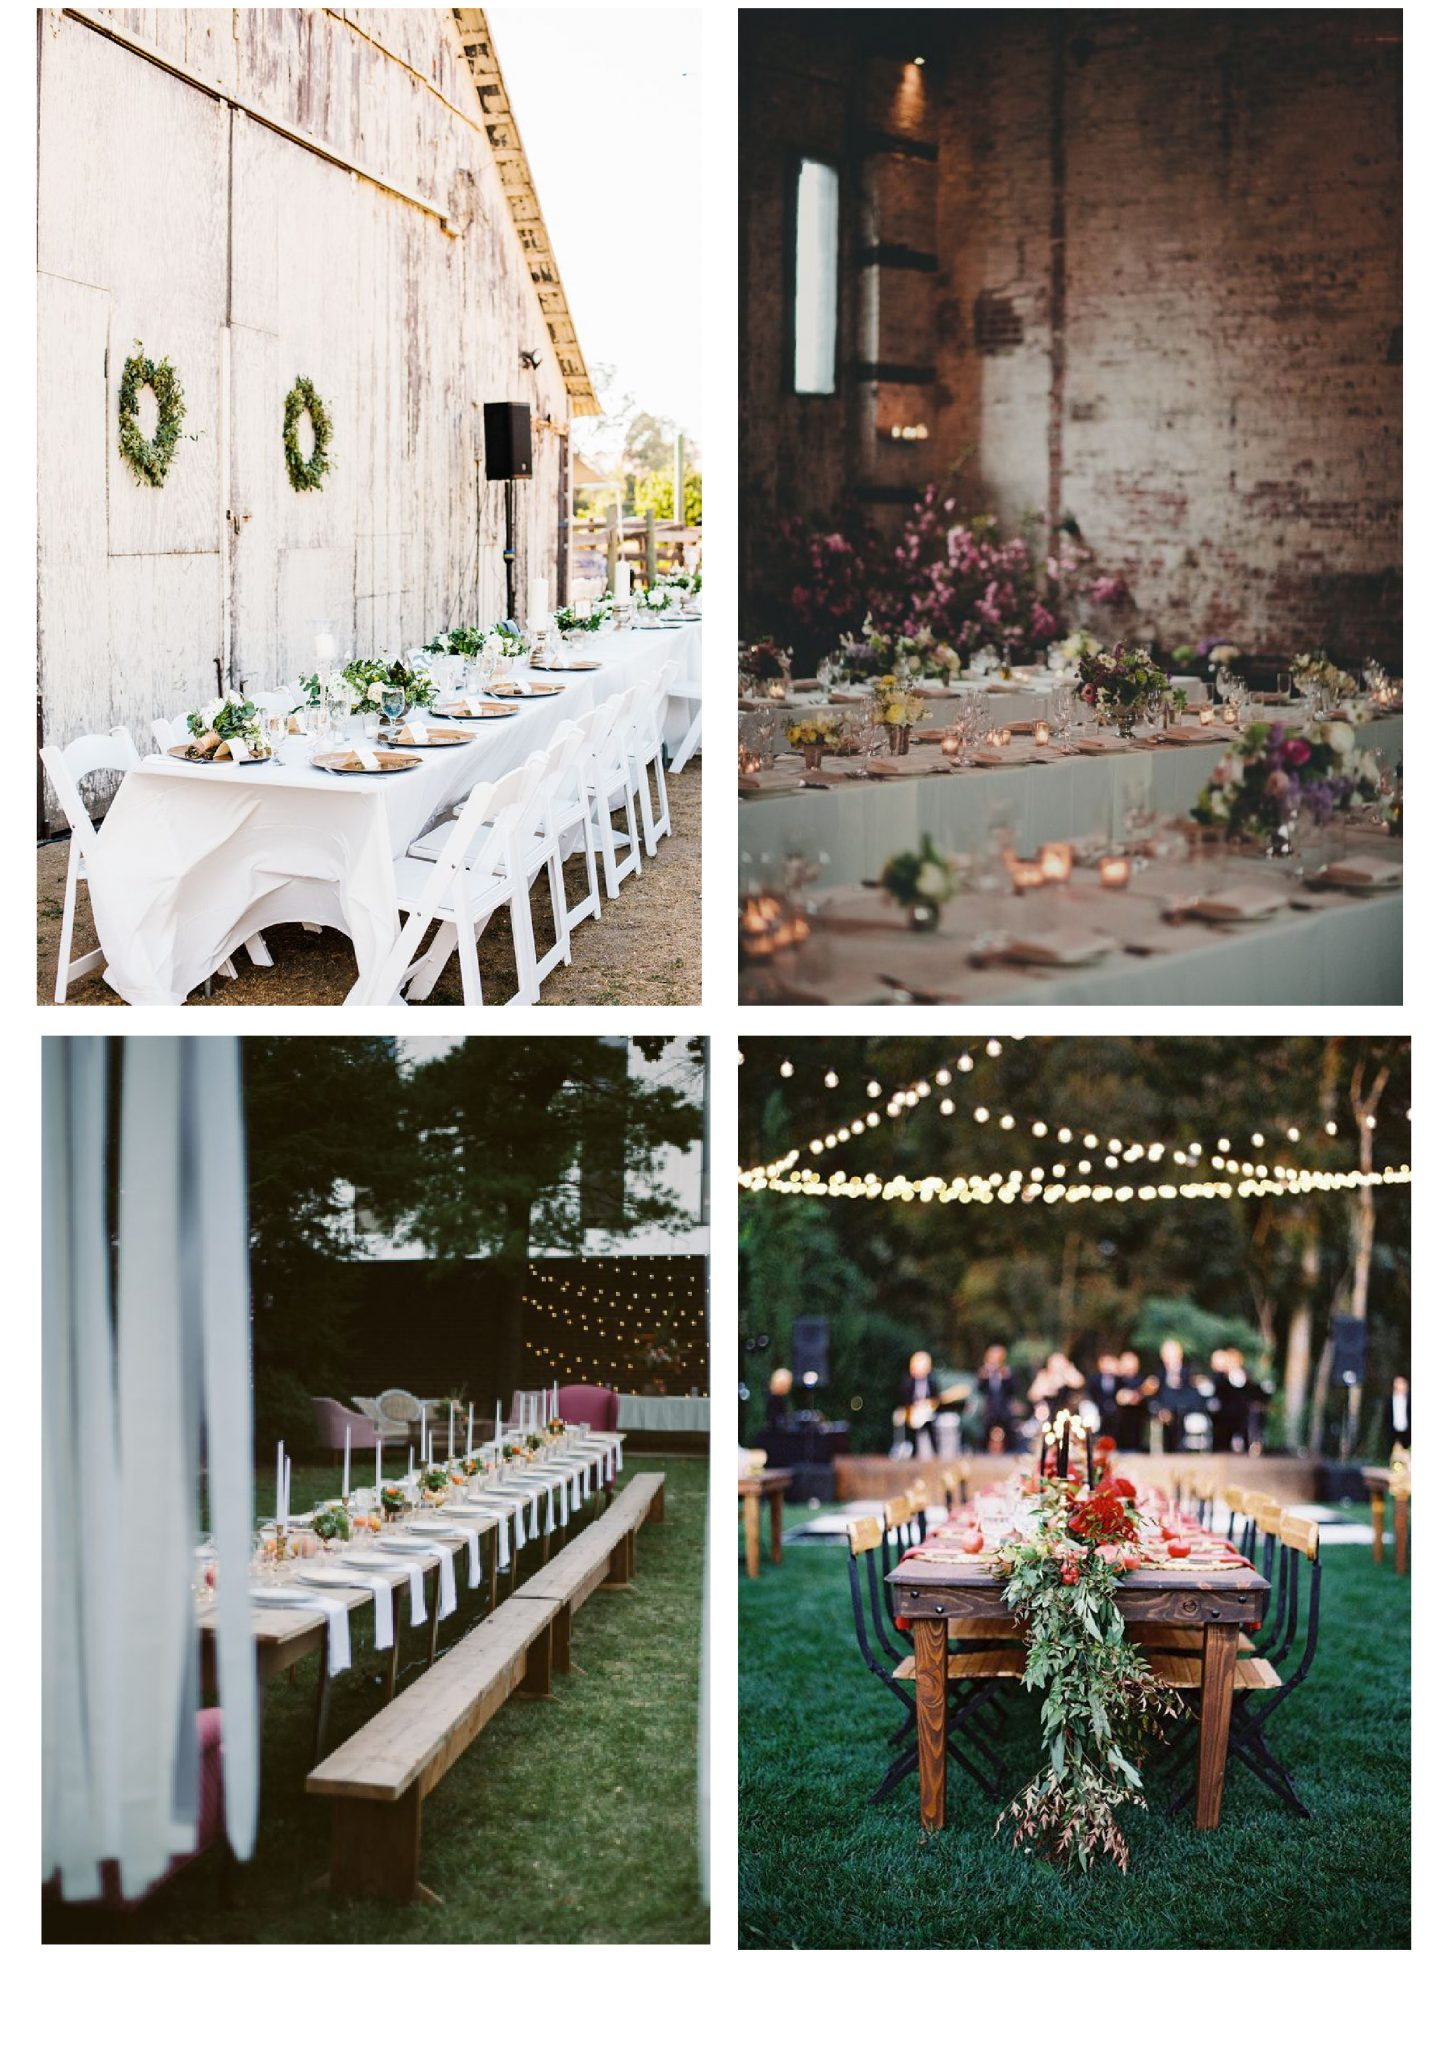 diner-tablee-decoration-wedding-planner